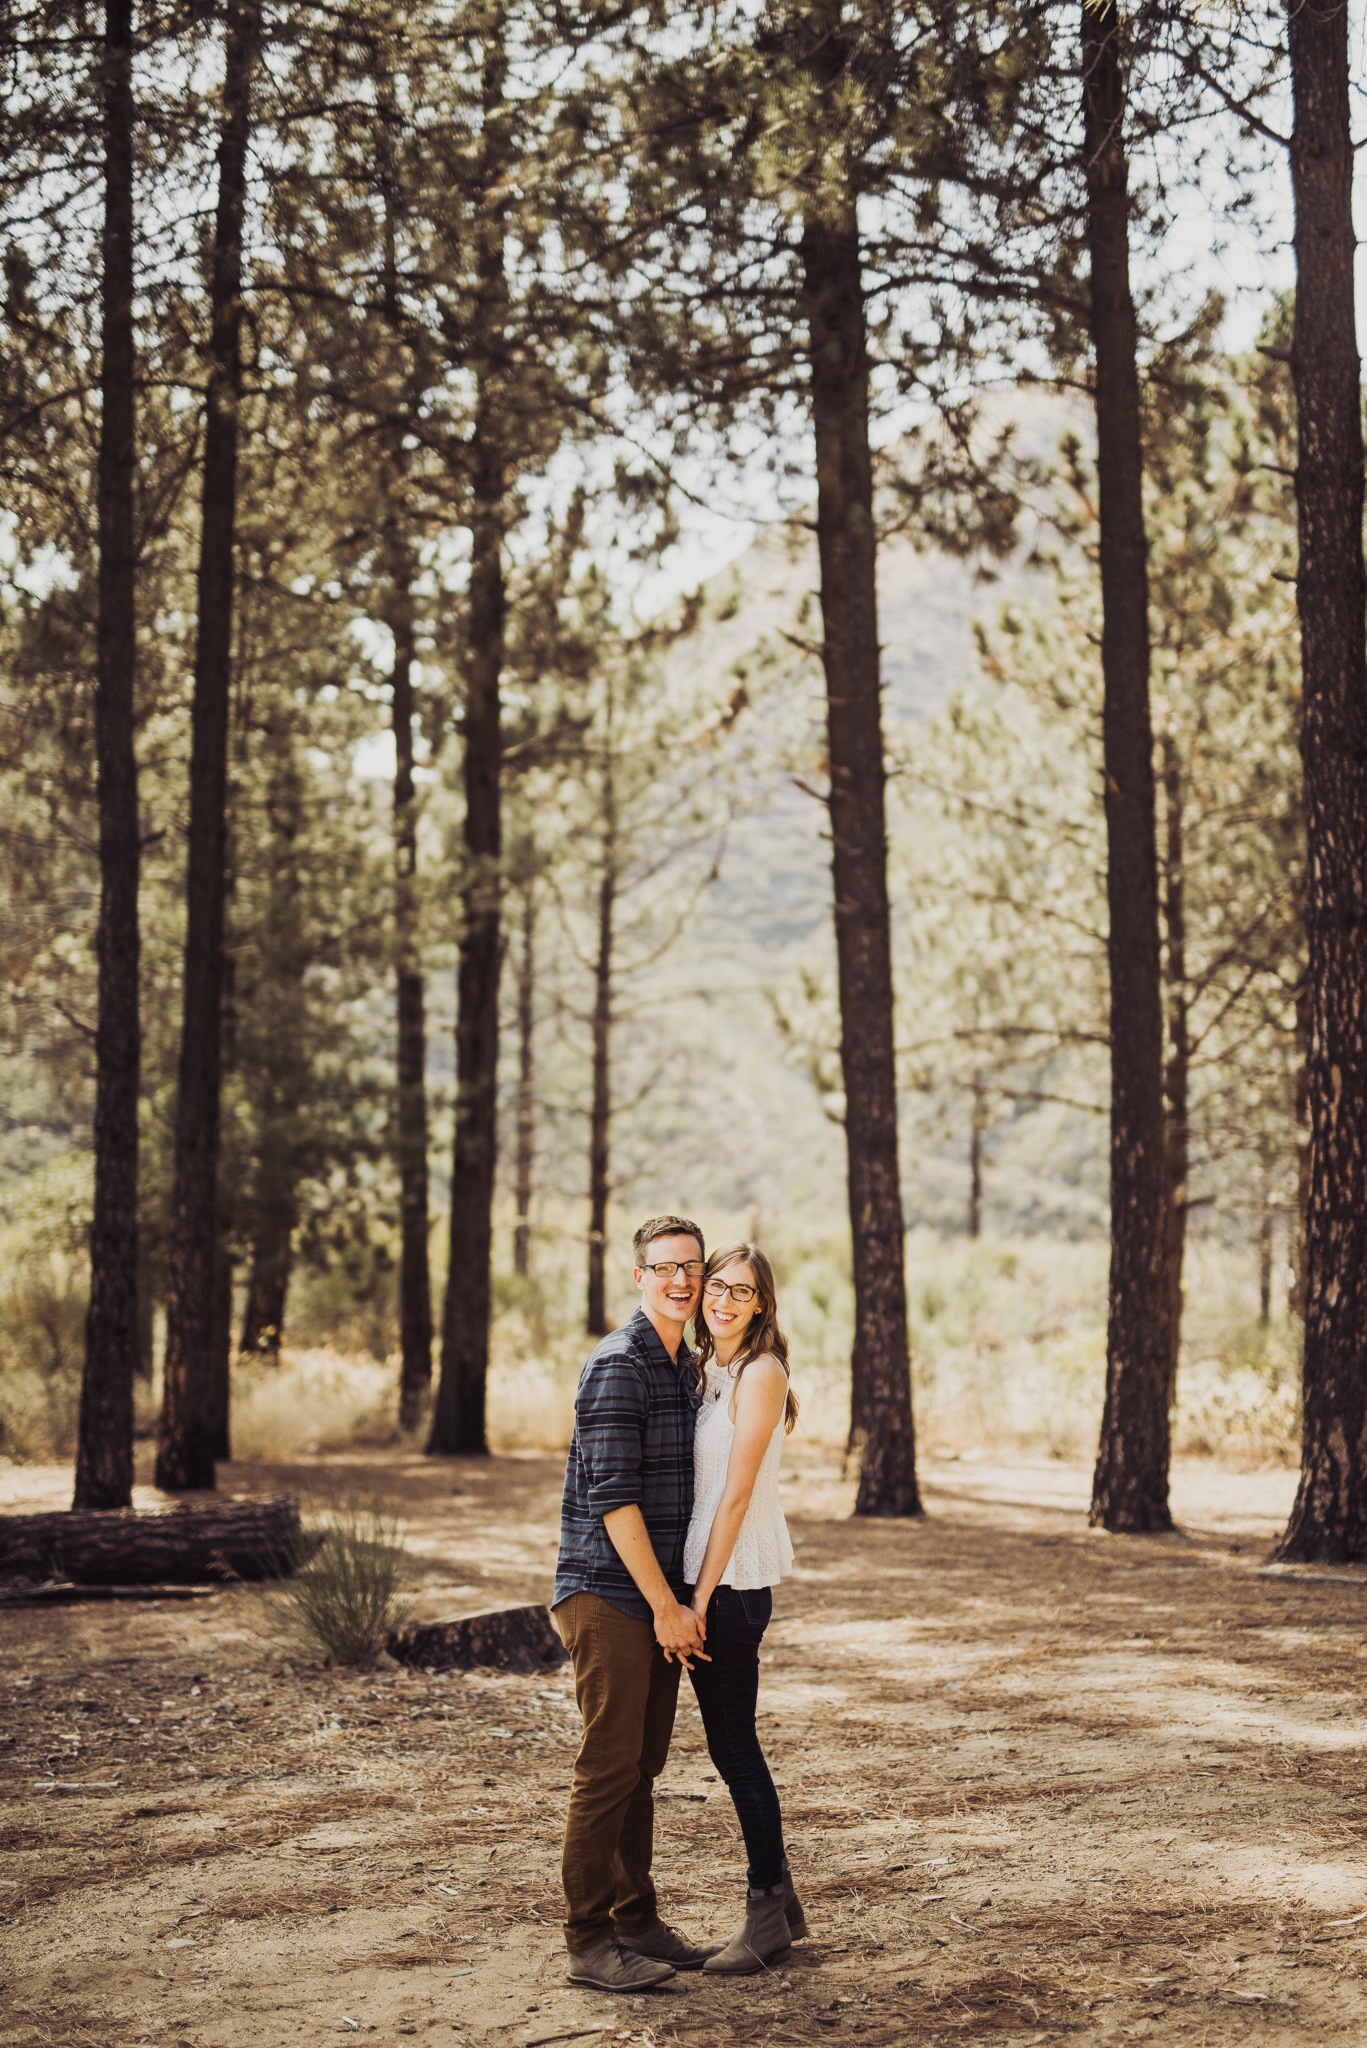 ©Isaiah + Taylor Photography - Los Angeles National Forest Engagement-0001.jpg